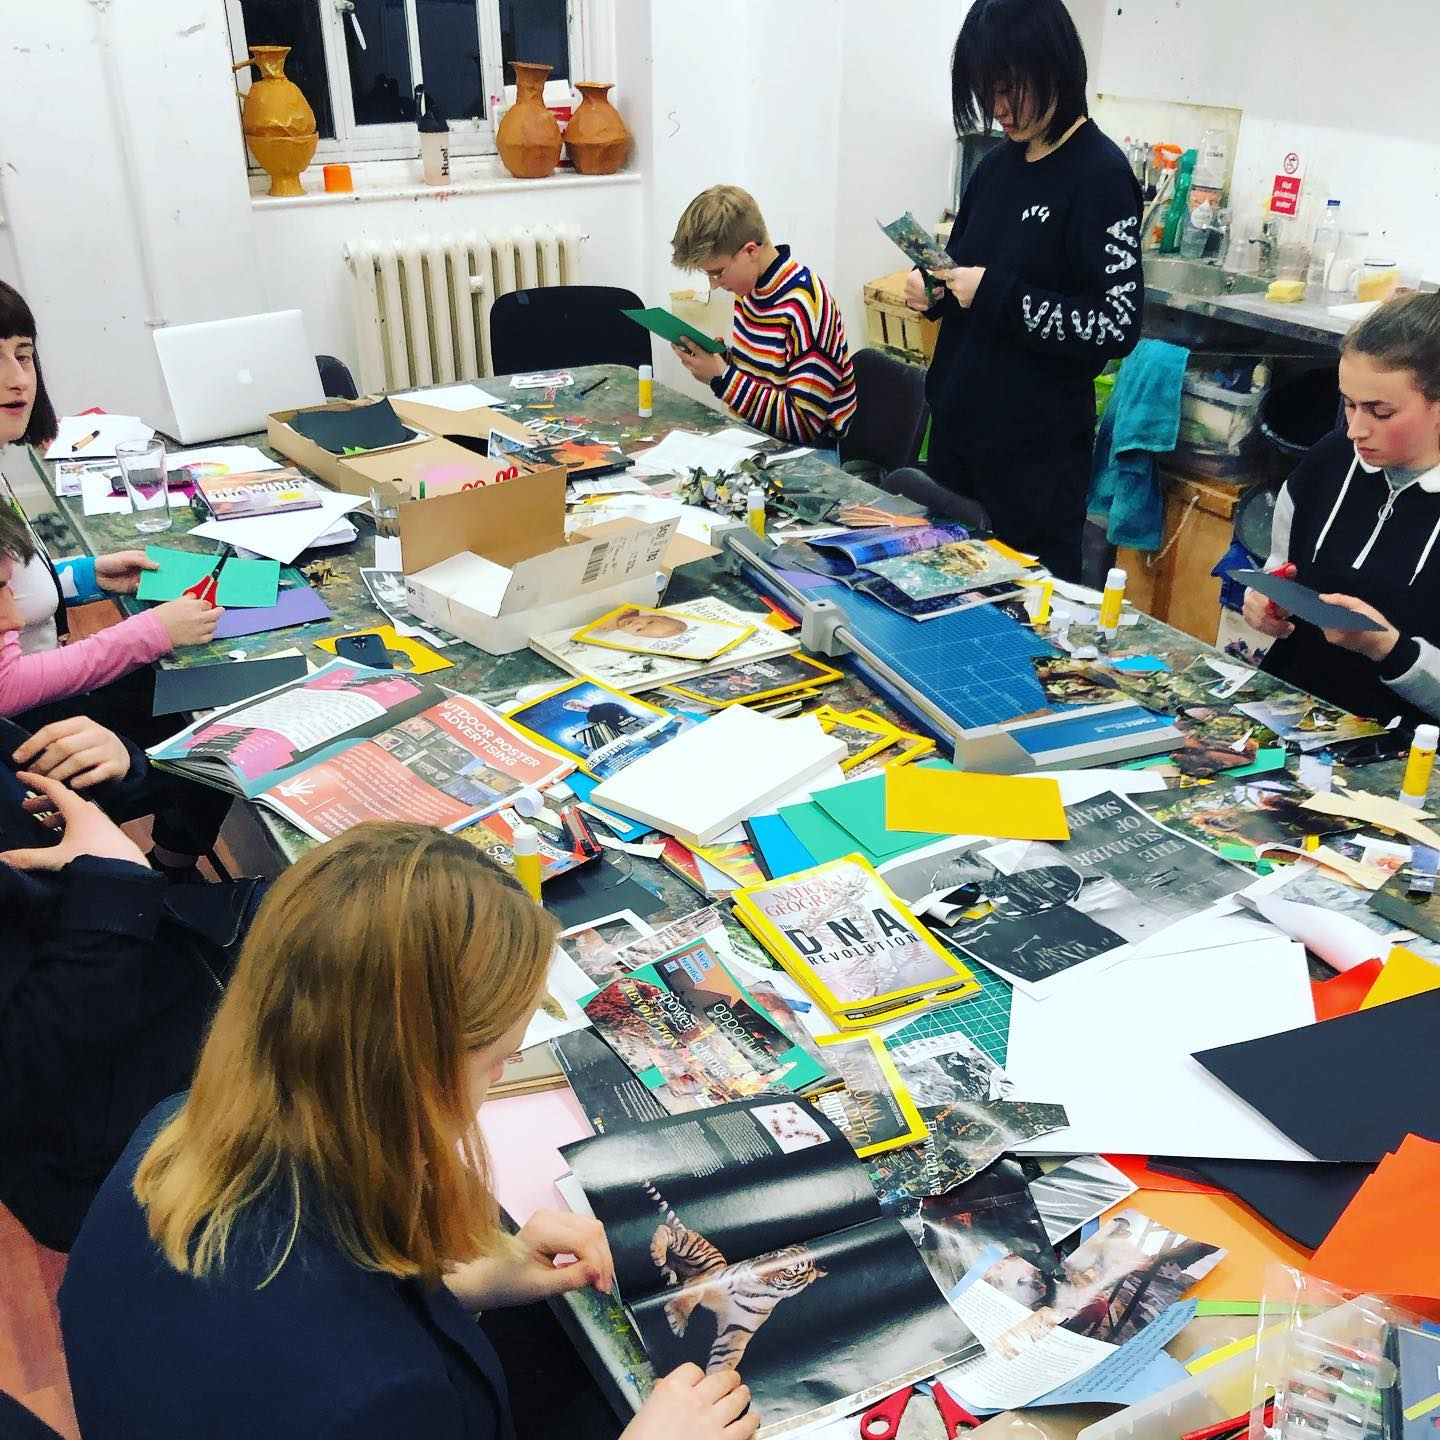 A group of young people are cutting up paper on a messy art table.